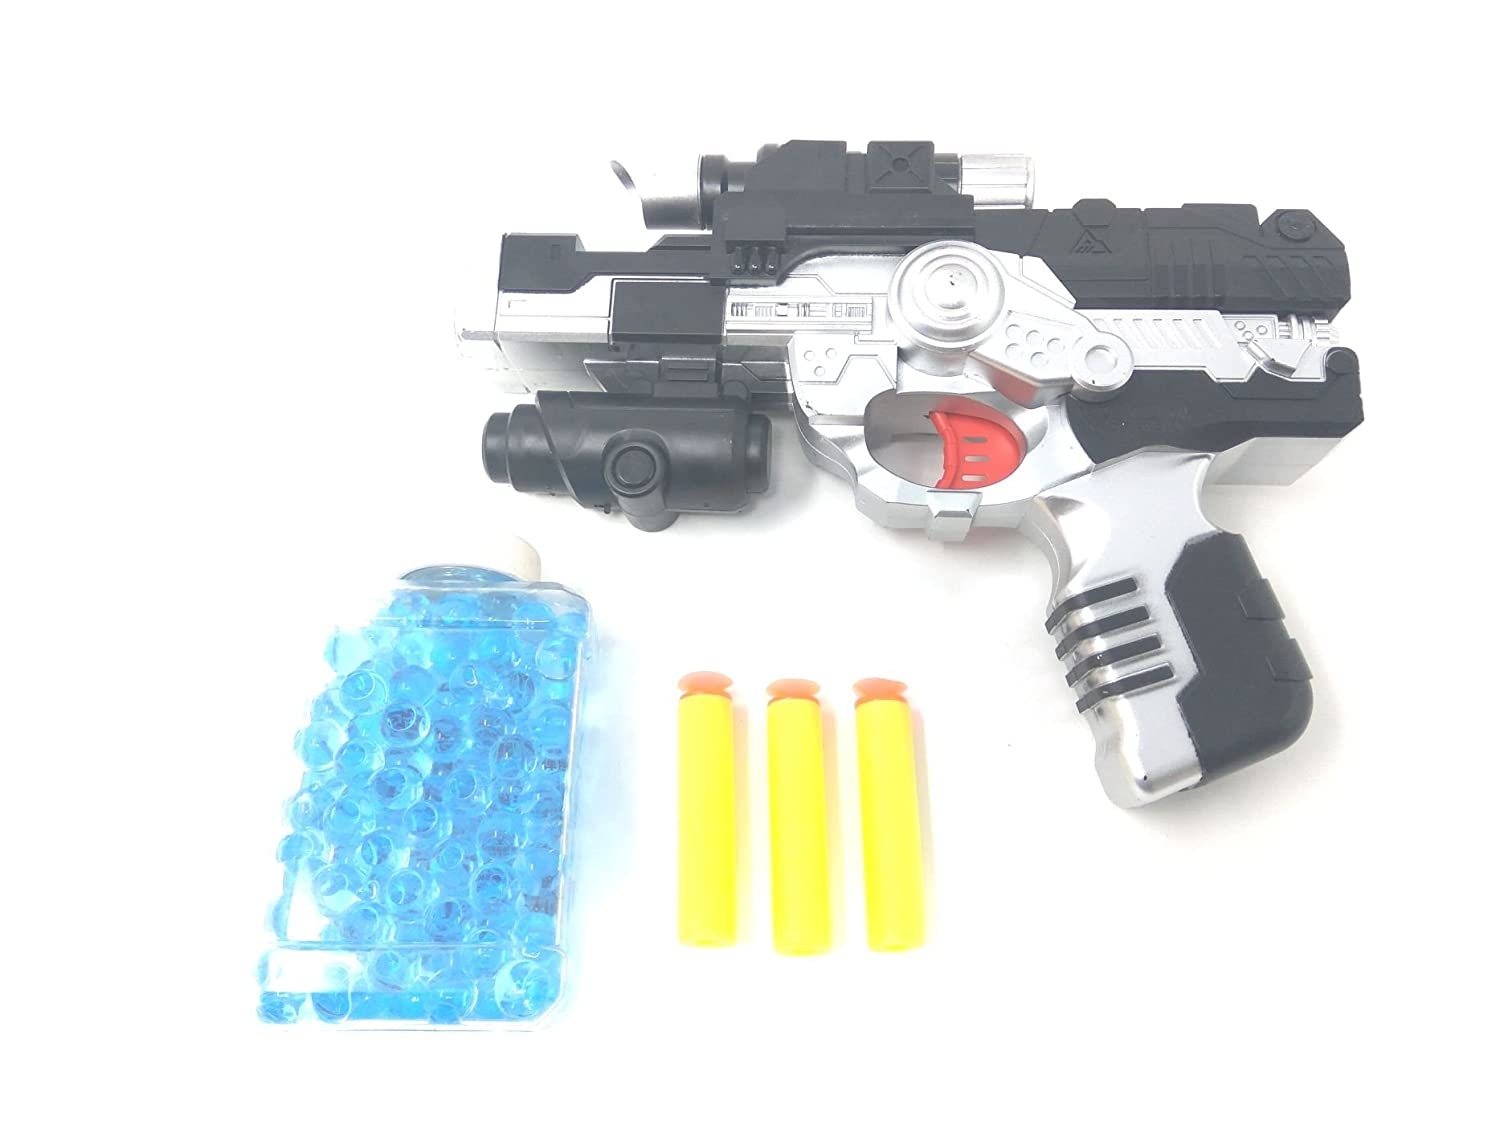 Buy Akrobo 2-In-1 Black Hawk Pistol/Gun With 400 Jelly Shots